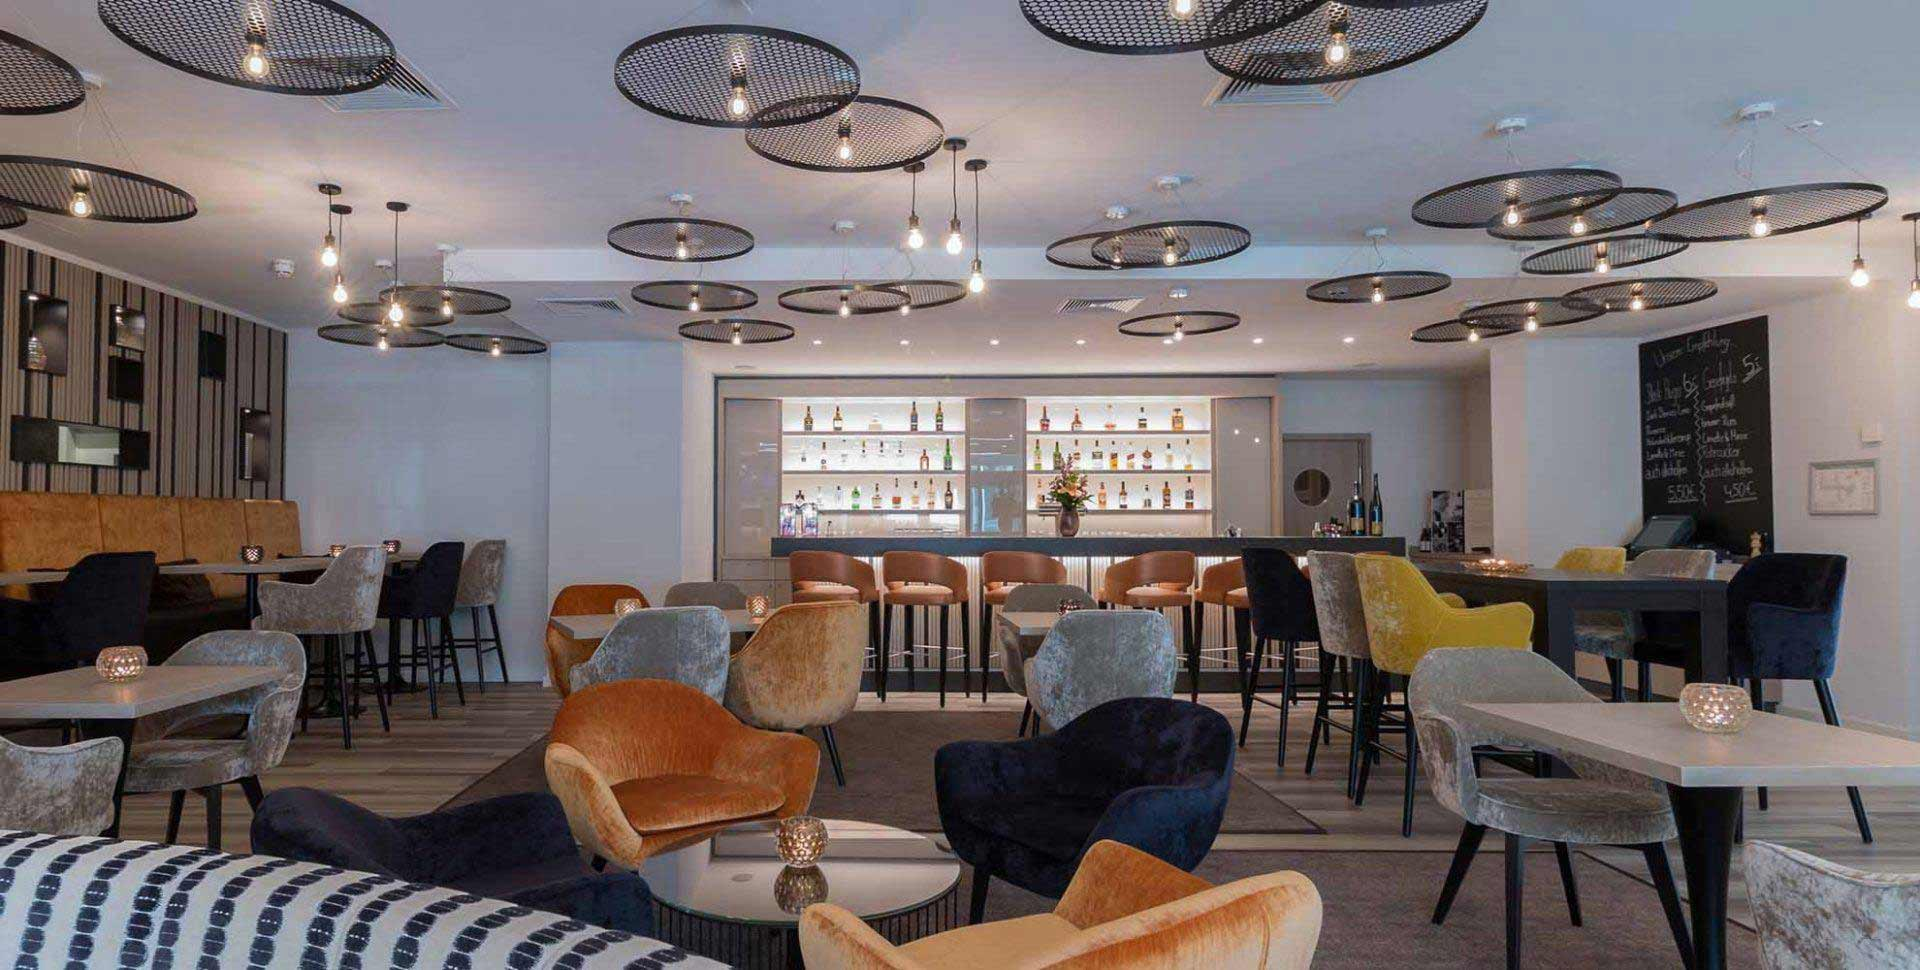 Bar FAIRLight Mercure Hannover Oldenburger Allee